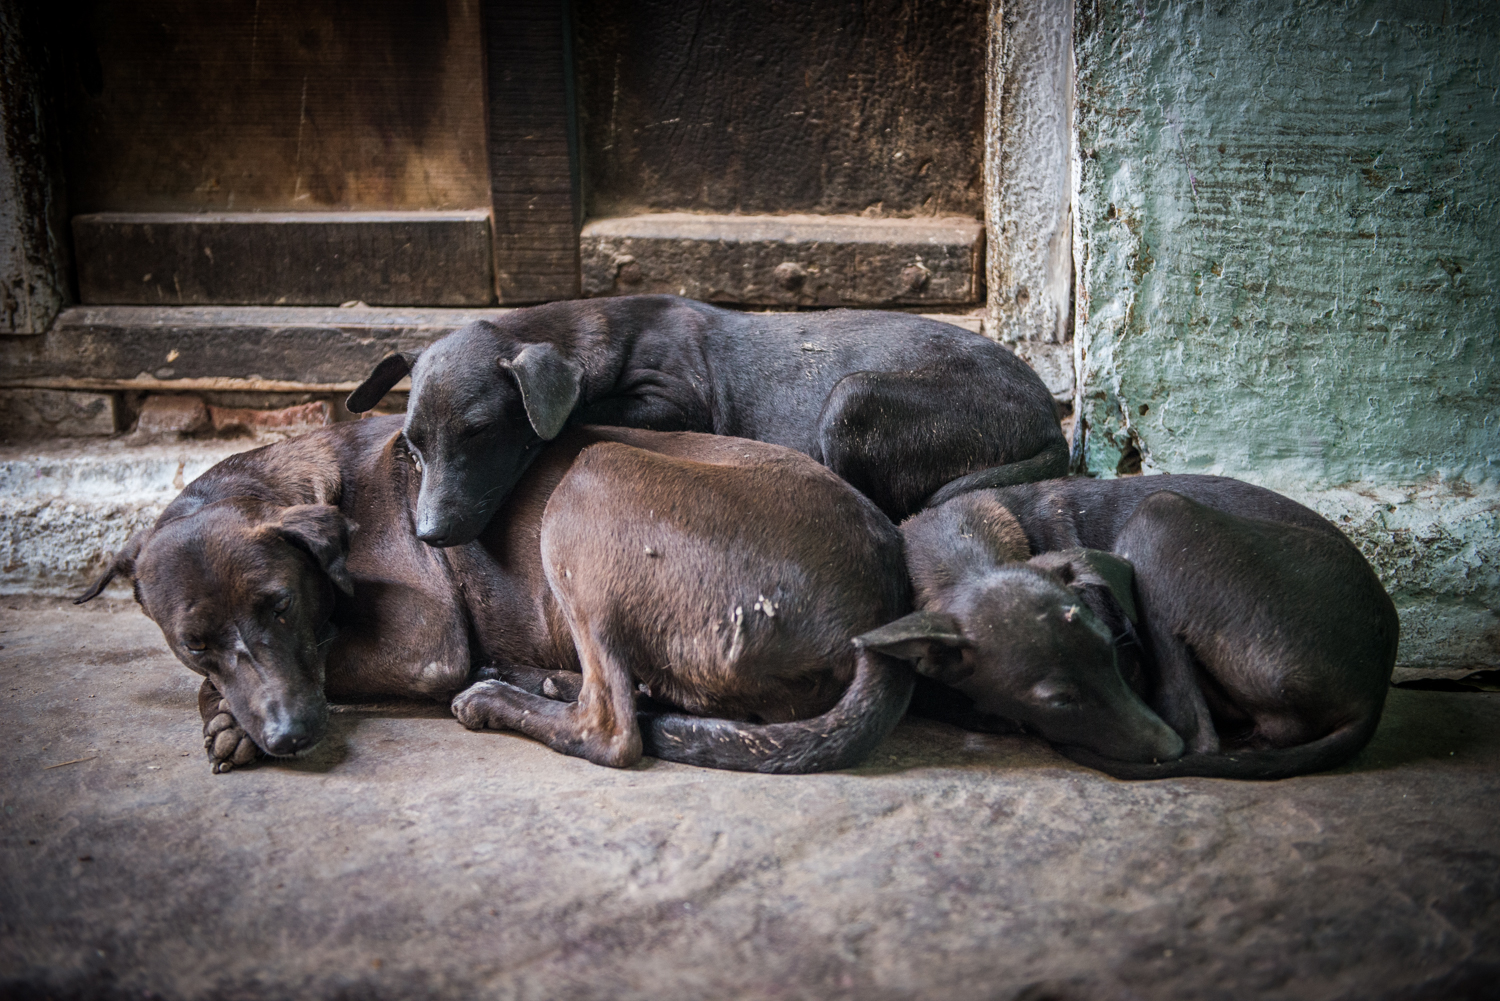 A family of dogs nestle close together during a heavy rainfall - Varanasi, India.